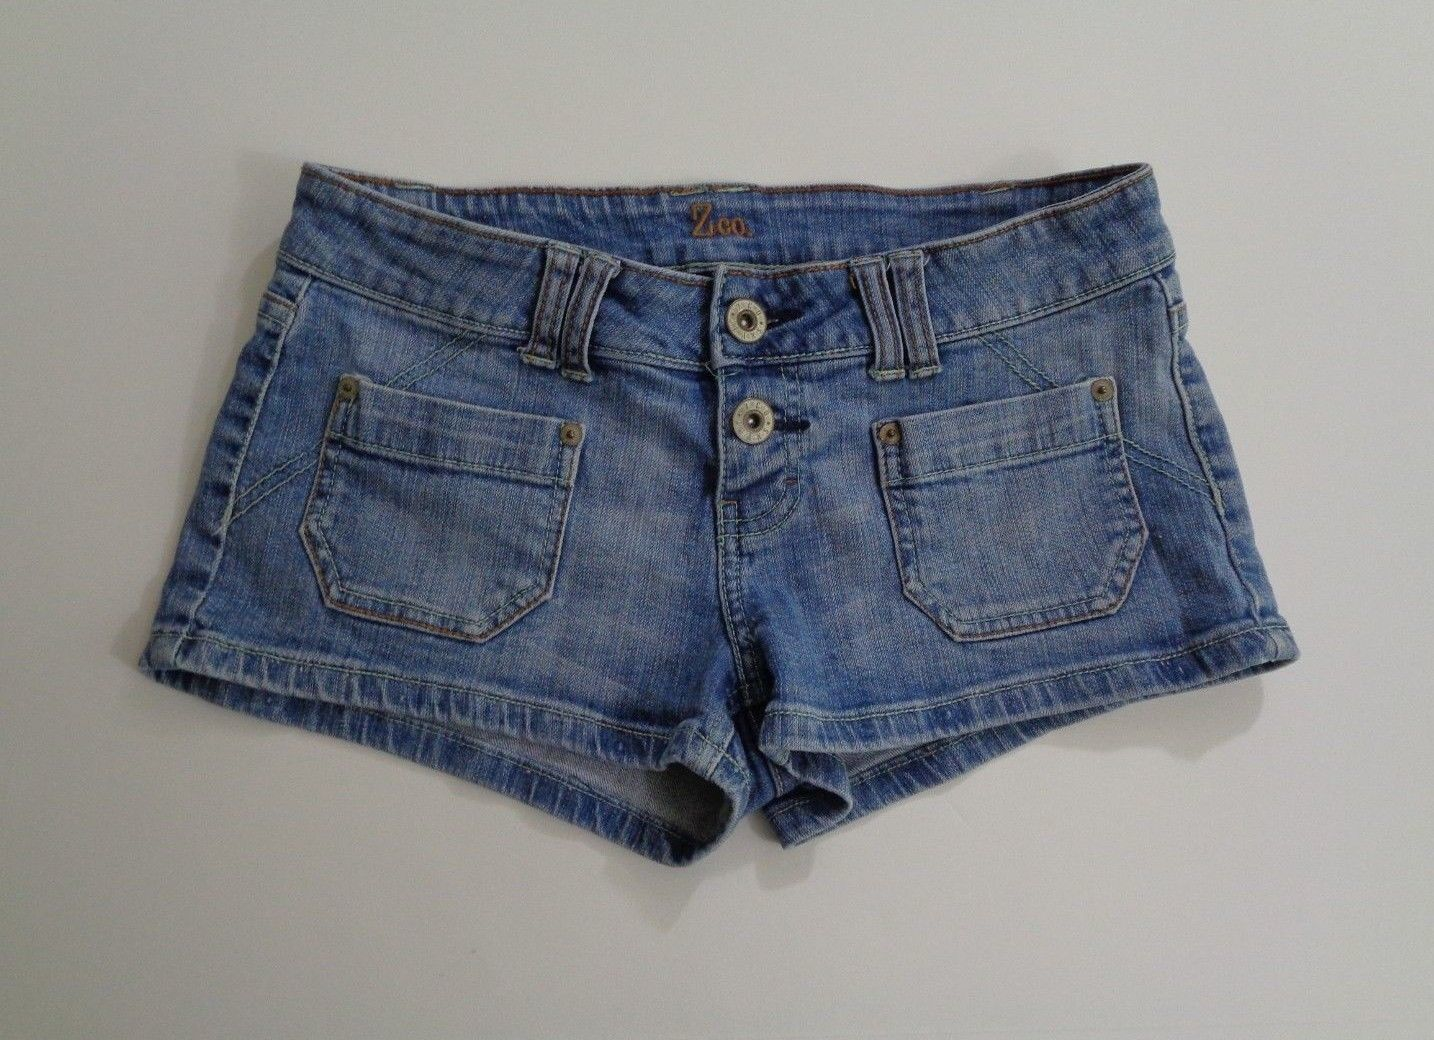 Primary image for Z Co Premium Womens Size 9 Denim Shorts Shorty Booty Medium Casual Blue Wash